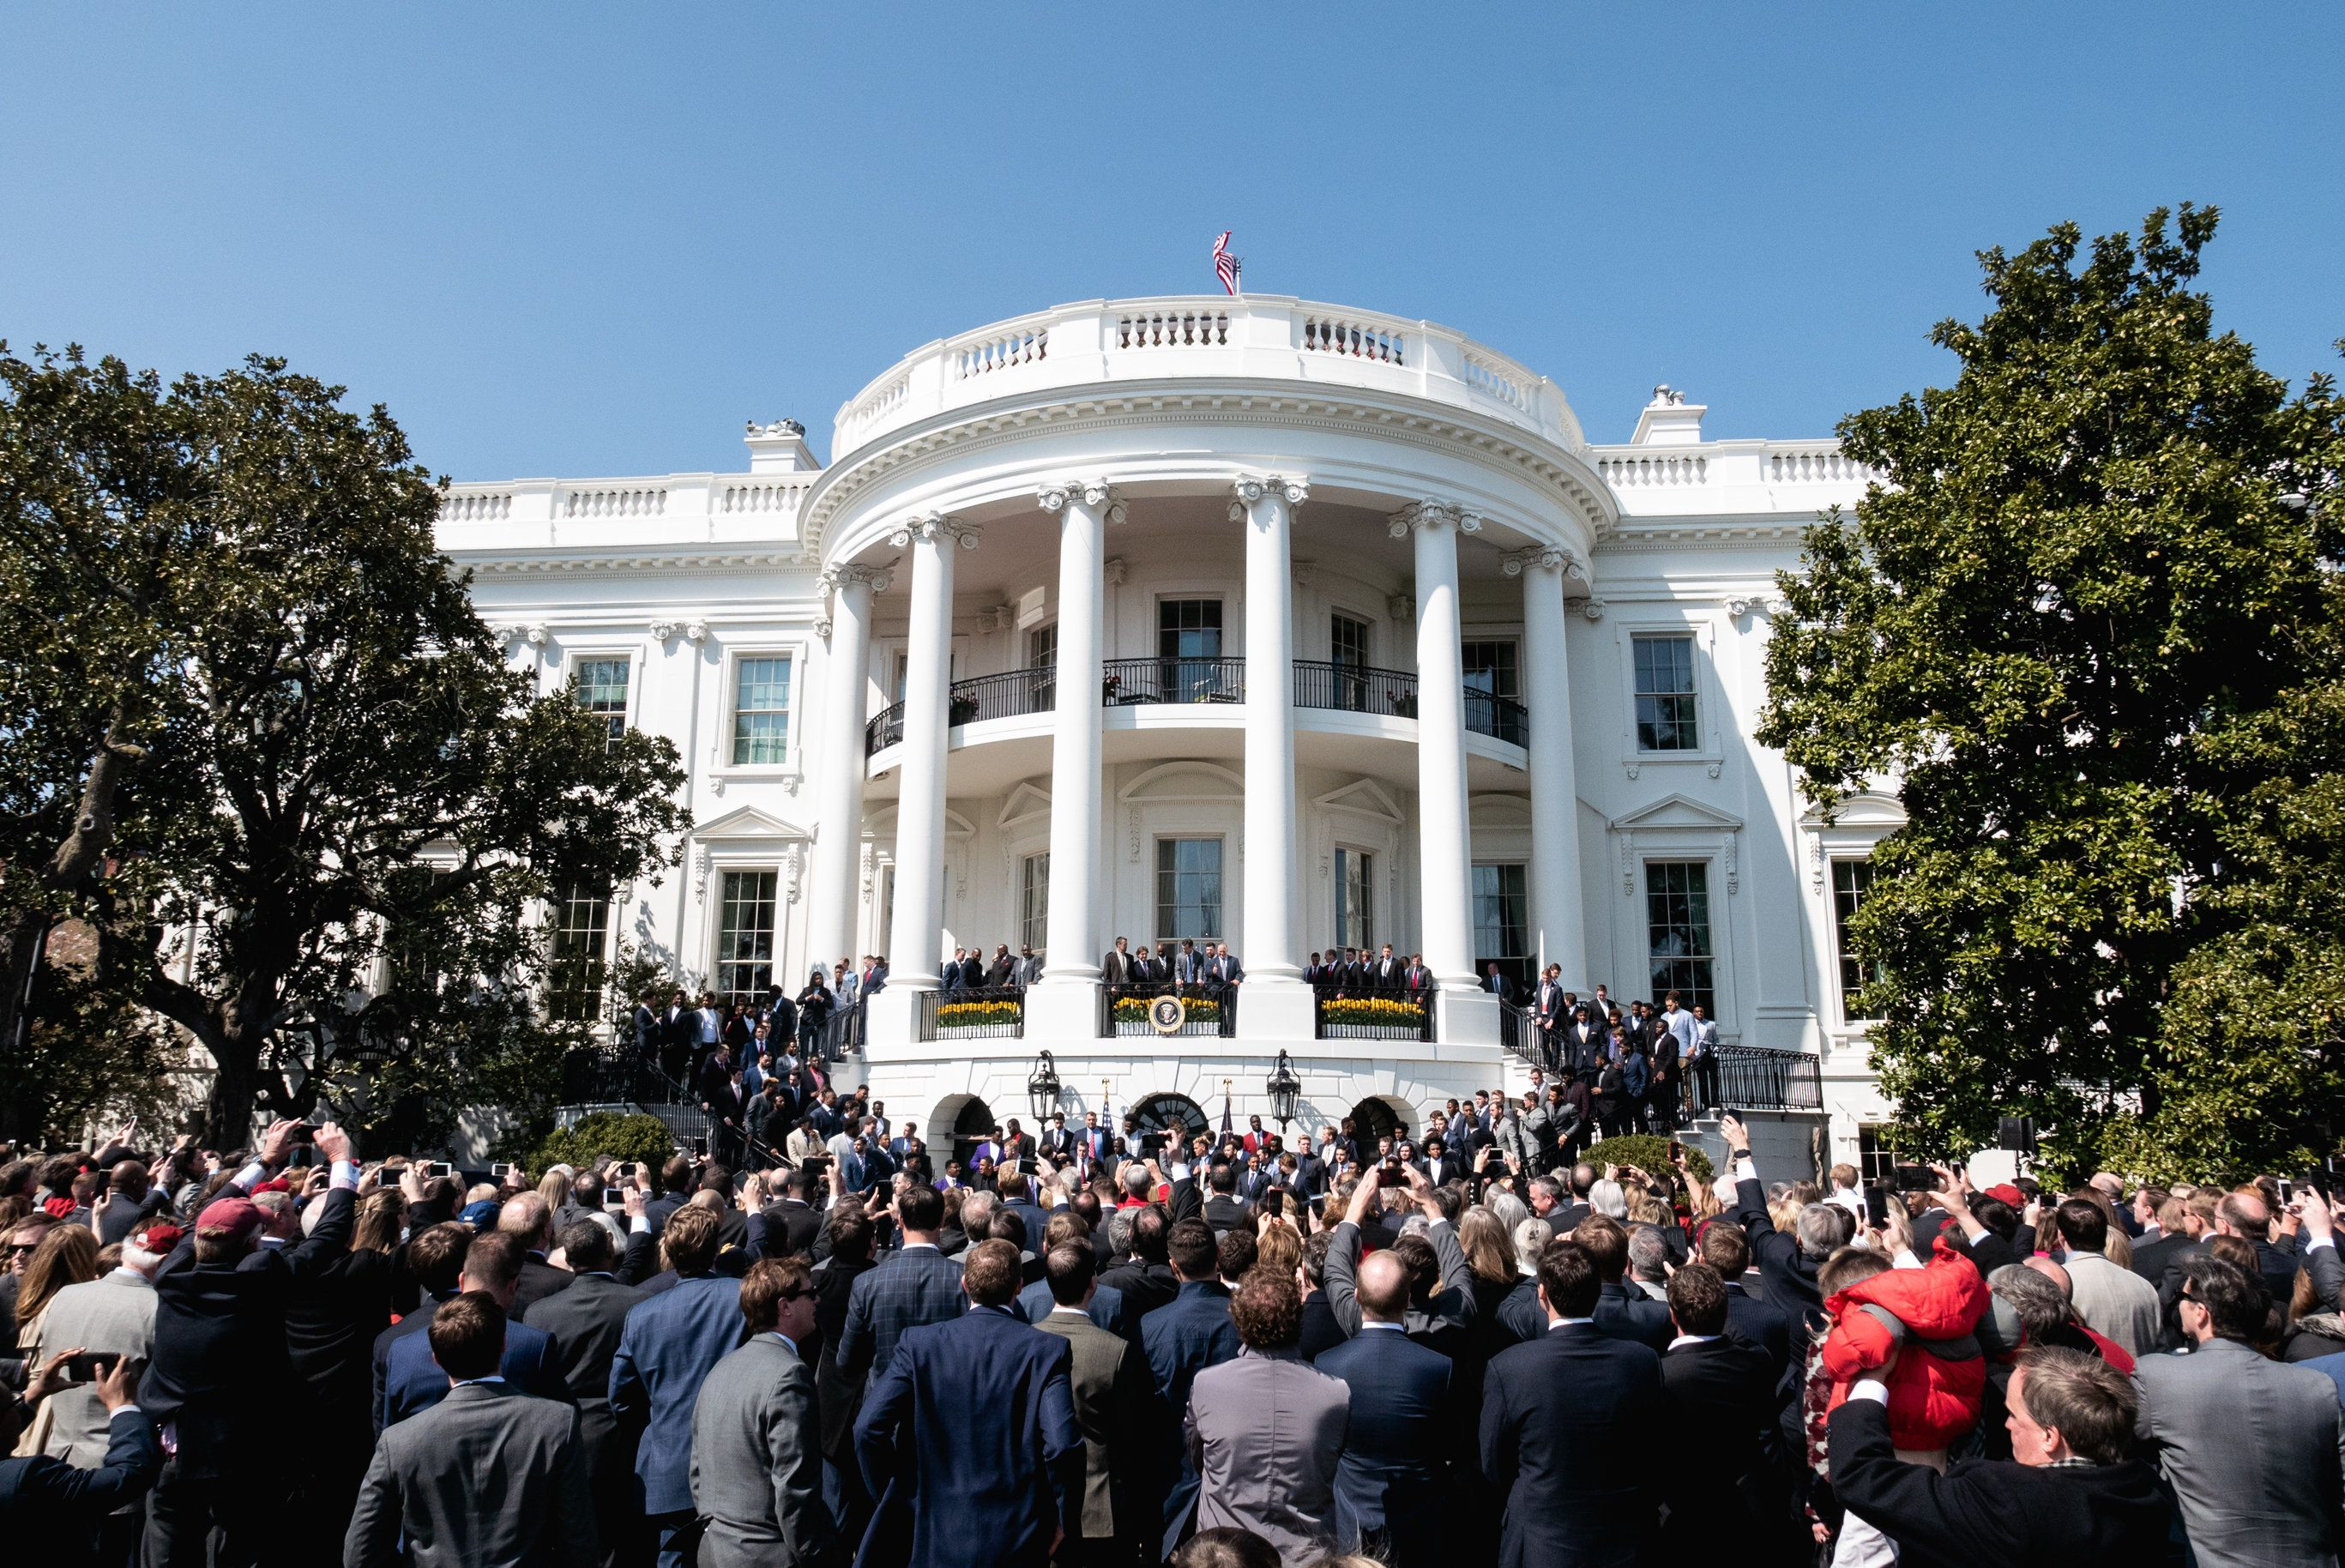 In celebration of their championship, U.S. President Donald Trump welcomes the 2017 NCAA Football National Champion Alabama Crimson Tide to the South Lawn of the White House on Tuesday, April 10, 2018. (Photo by Cheriss May) (Photo by Cheriss May/NurPhoto via Getty Images)